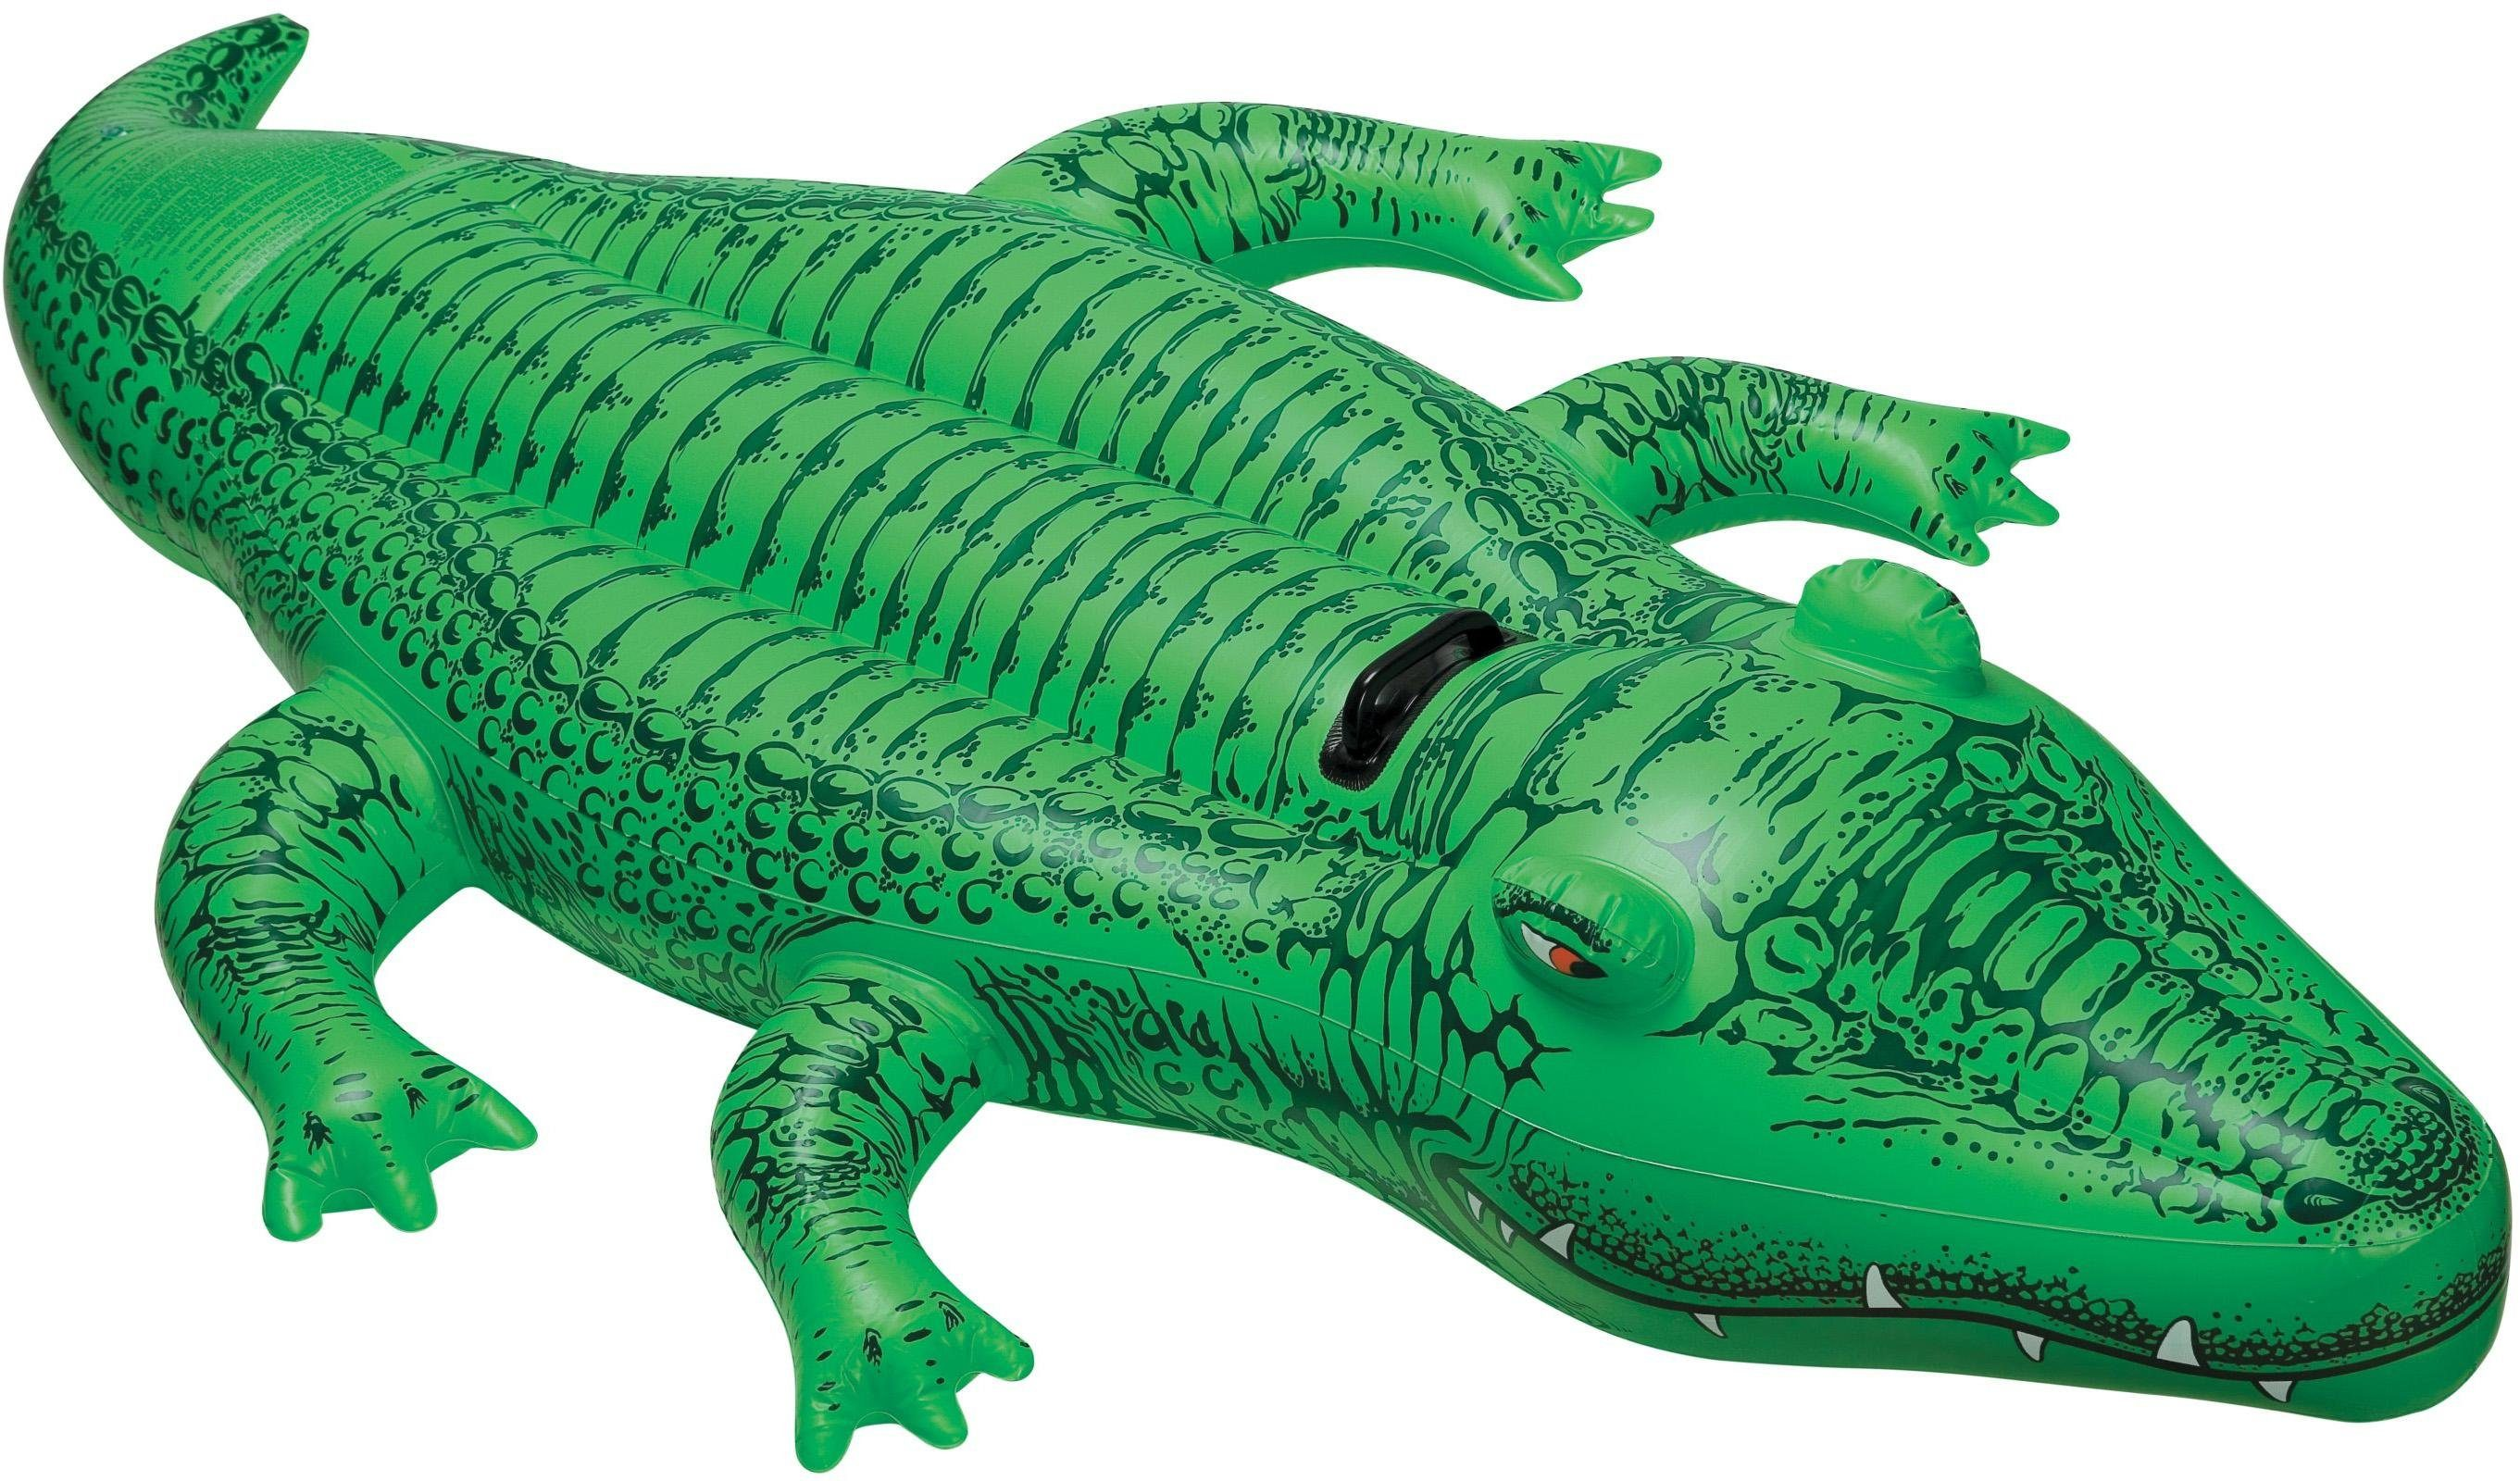 Intex Schwimmtier Alligator, »Lil' Aligator«